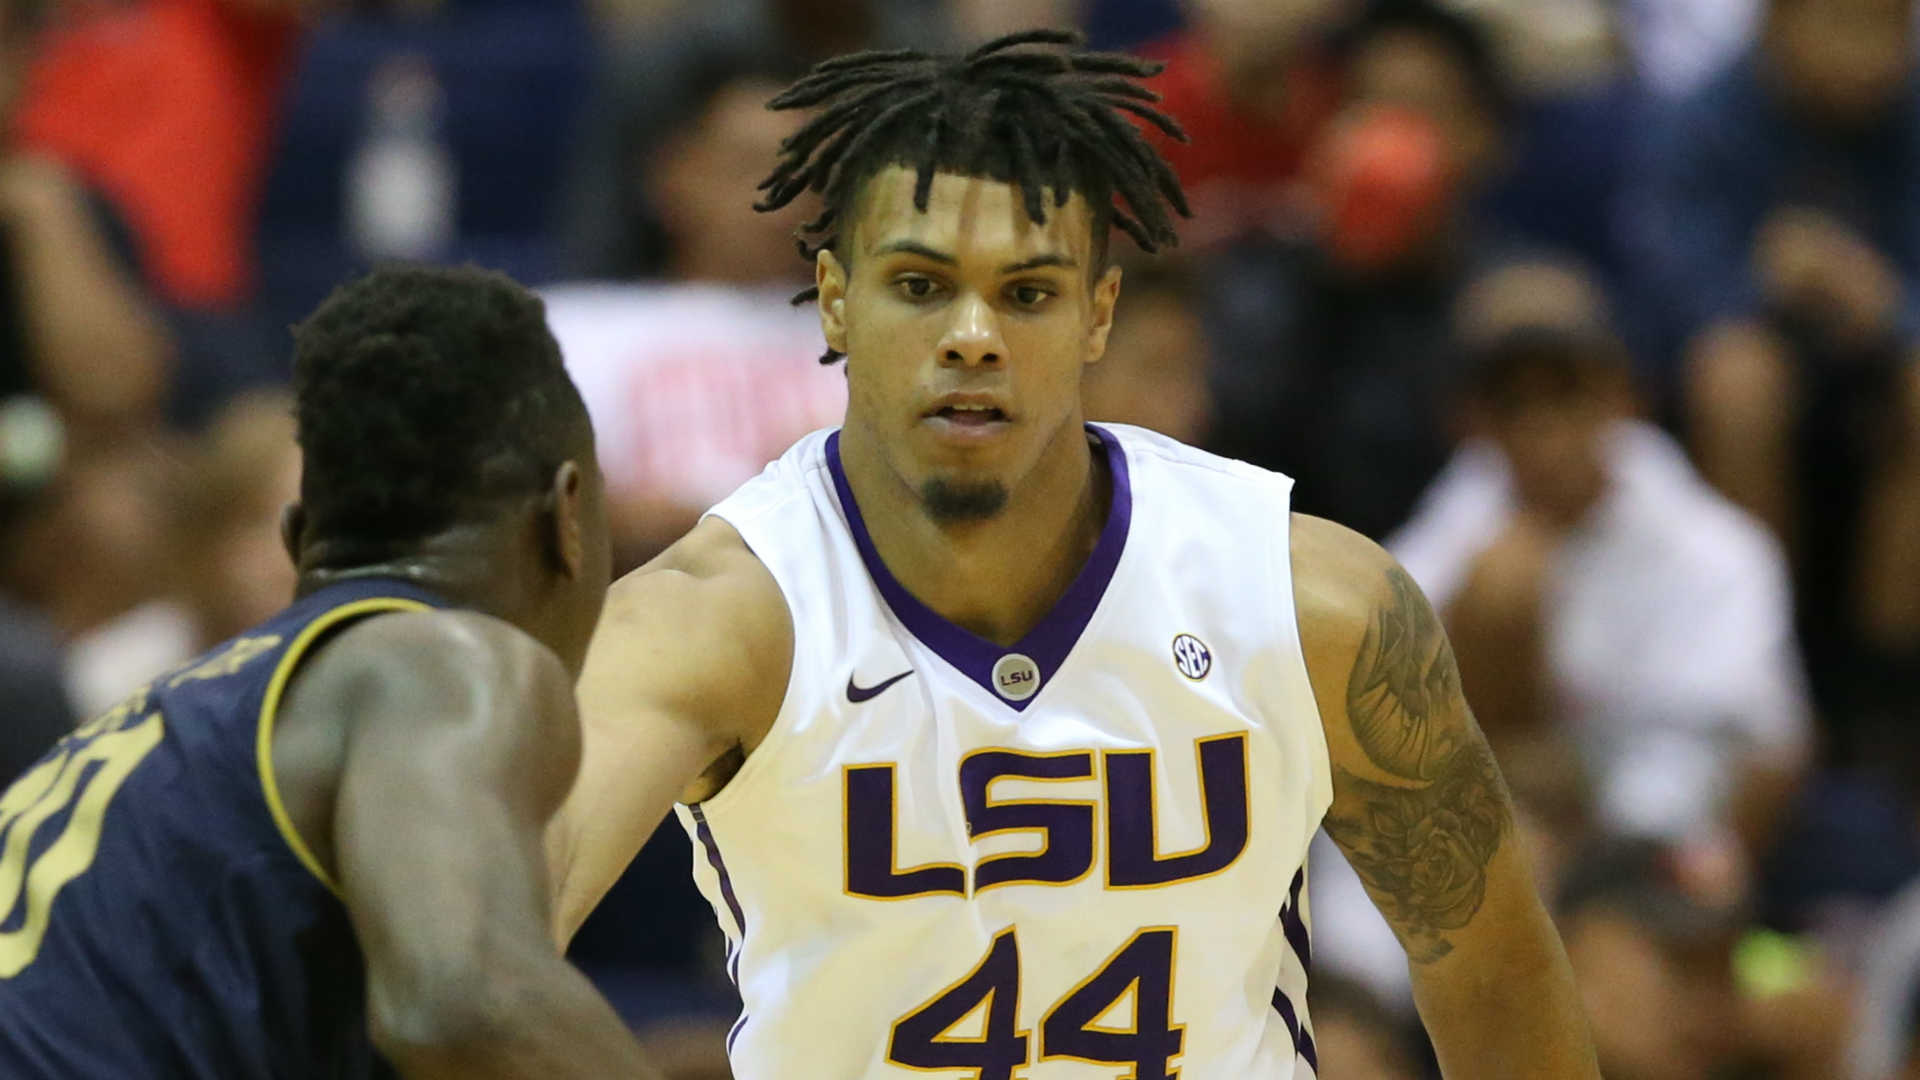 LSU basketball player Wayde Sims killed in Louisiana shooting